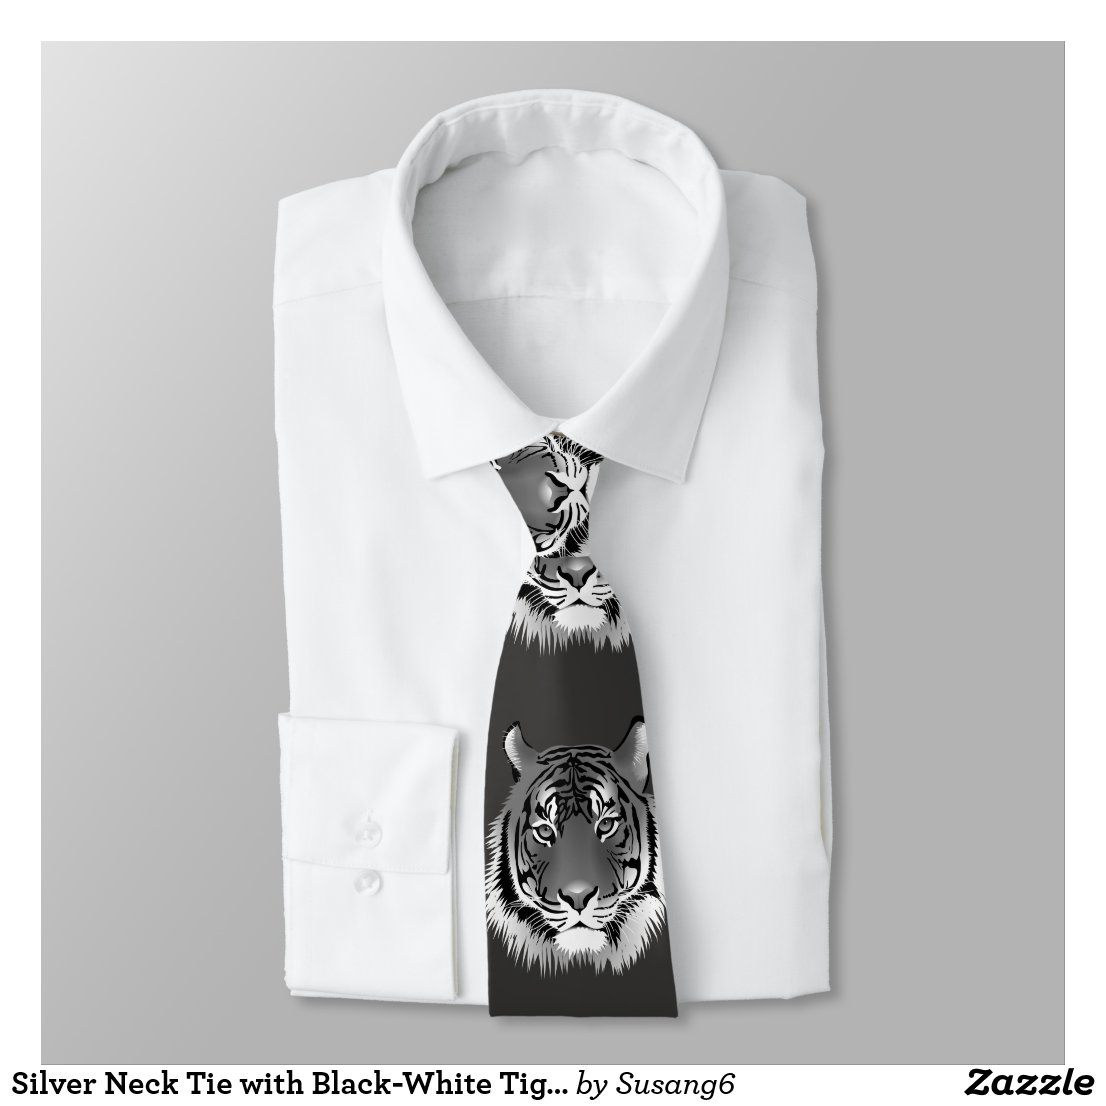 Silver Neck Tie with Black-White Tiger